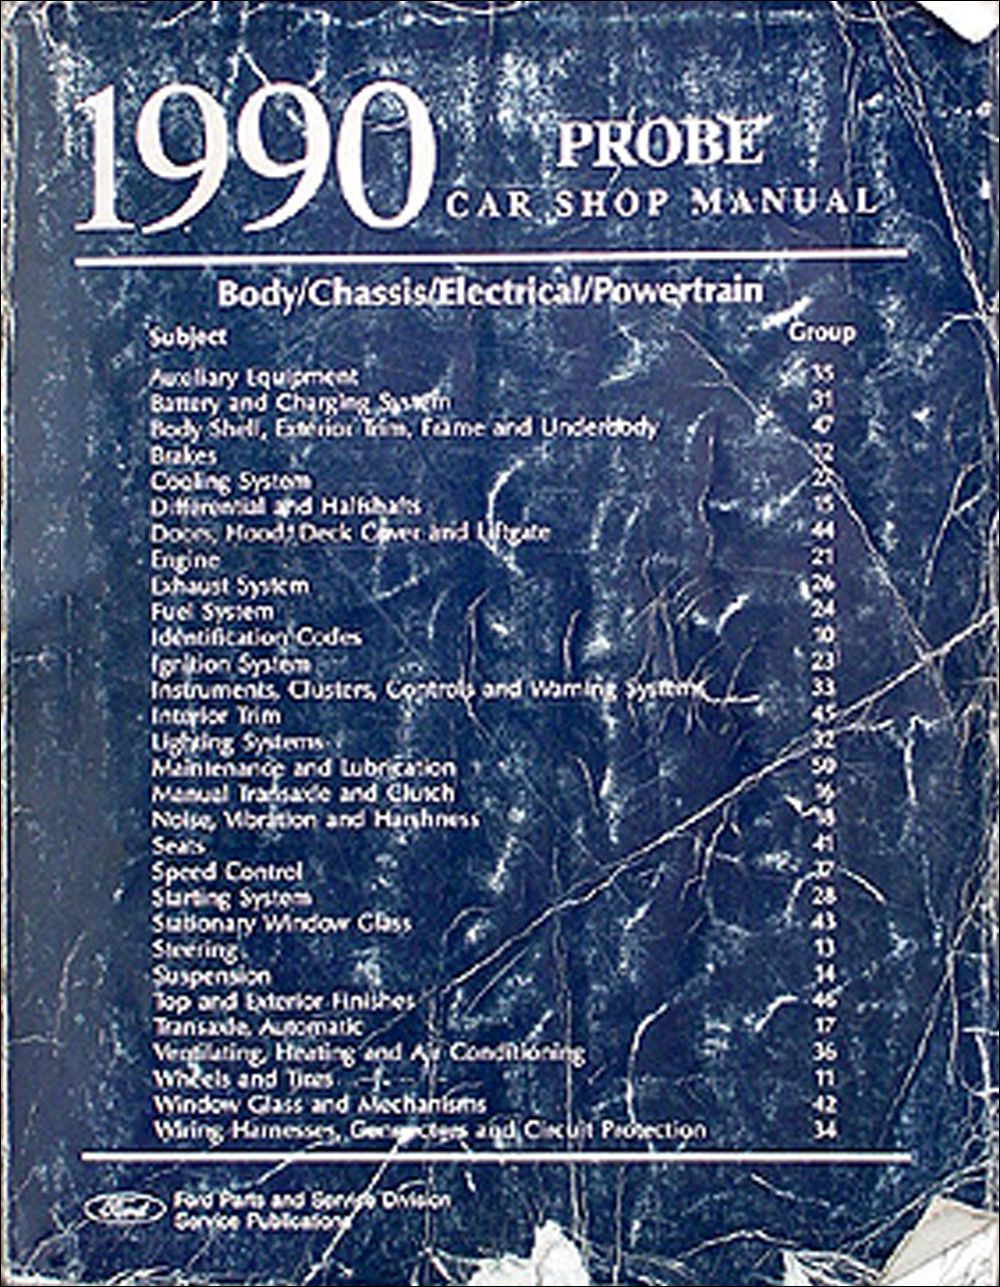 hight resolution of 1990 ford probe repair shop manual original including gl lx gt1990 ford probe repair manual original